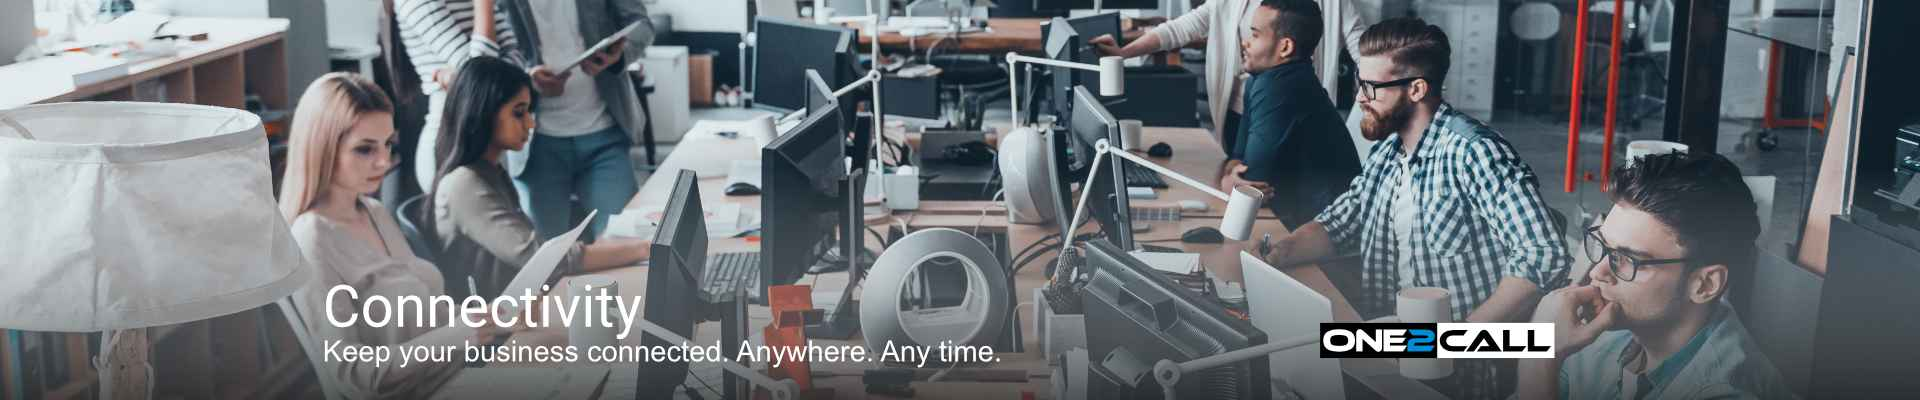 Connectivity - Keep your business connected. Anywhere. Any time.